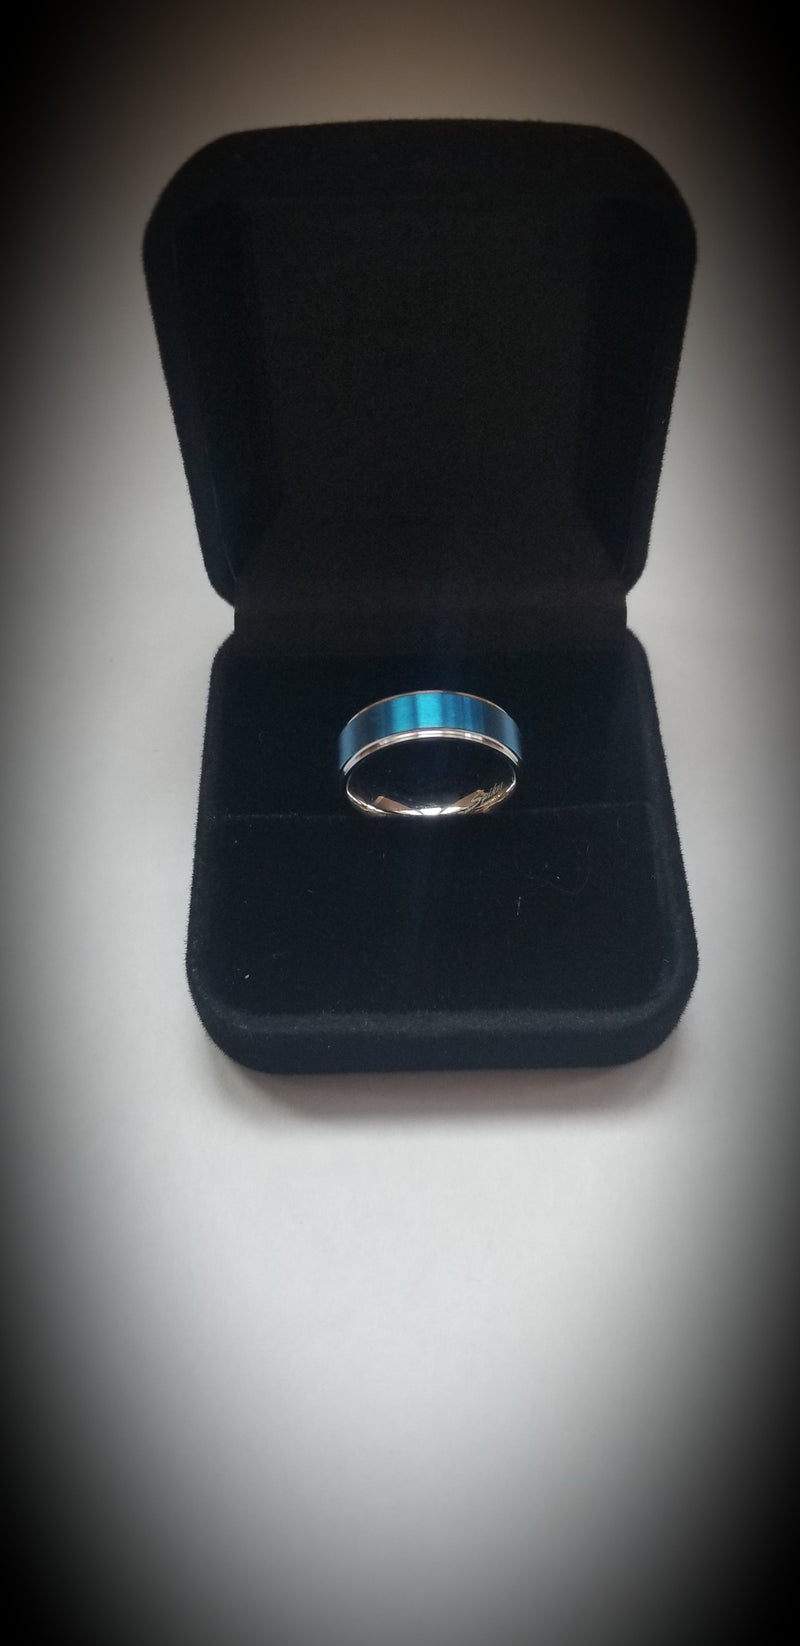 products/stainless-steel-thin-blue-line-ring-jewelry-215503.jpg